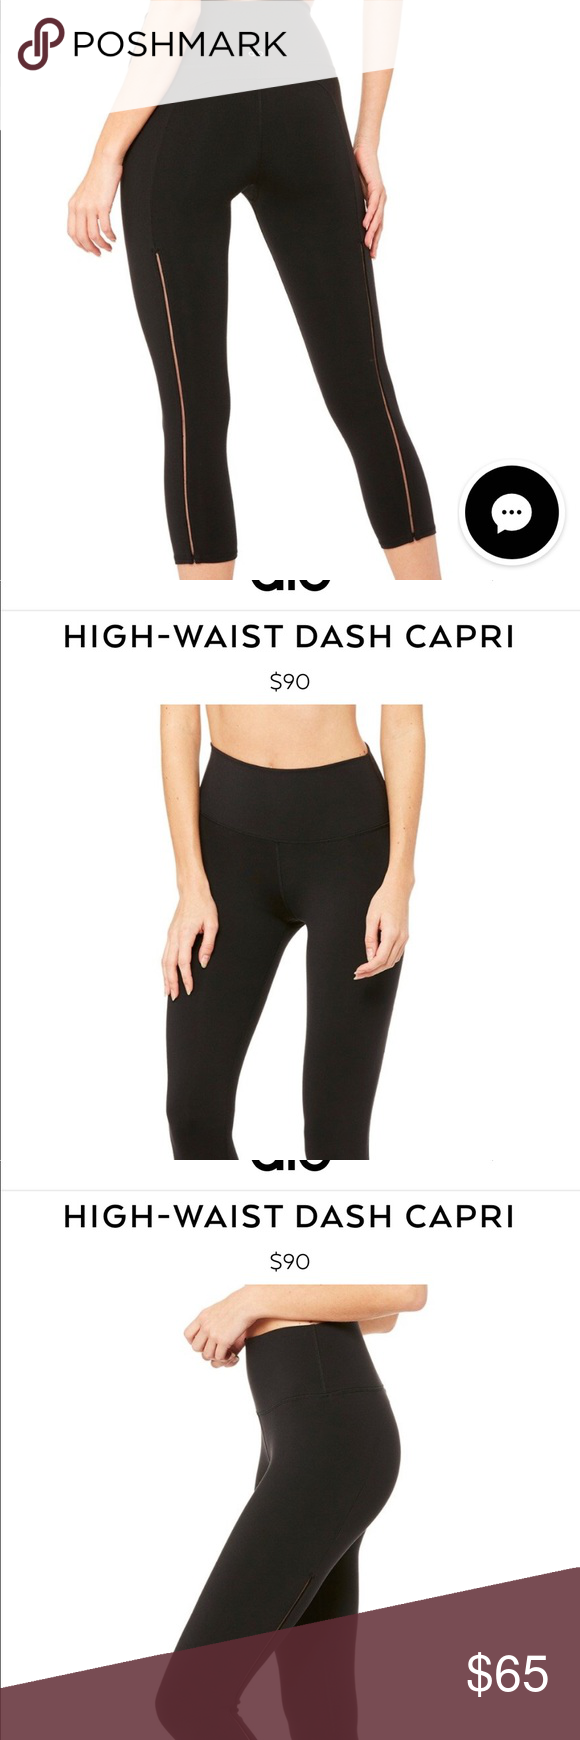 6e12fd3c817d2 Alo high waist dash capri leggings Alo high waist dash capri legging in  black. Please